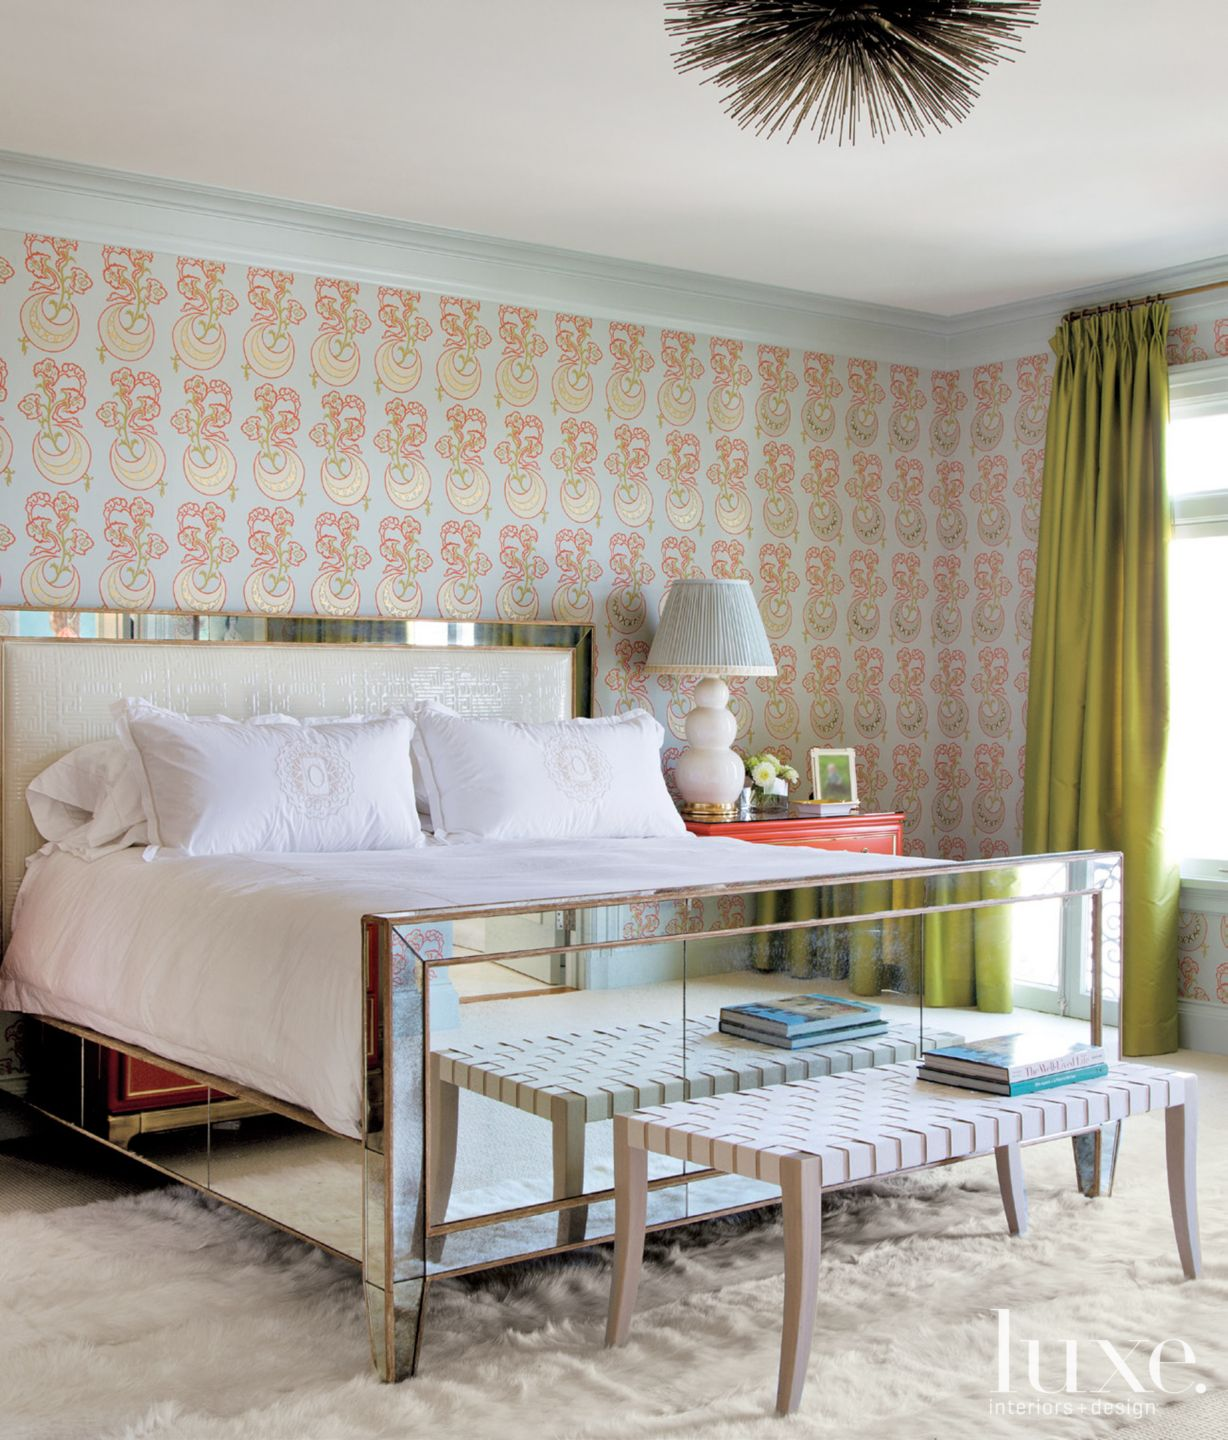 Eclectic Multicolored Bedroom with Mirrored Bed